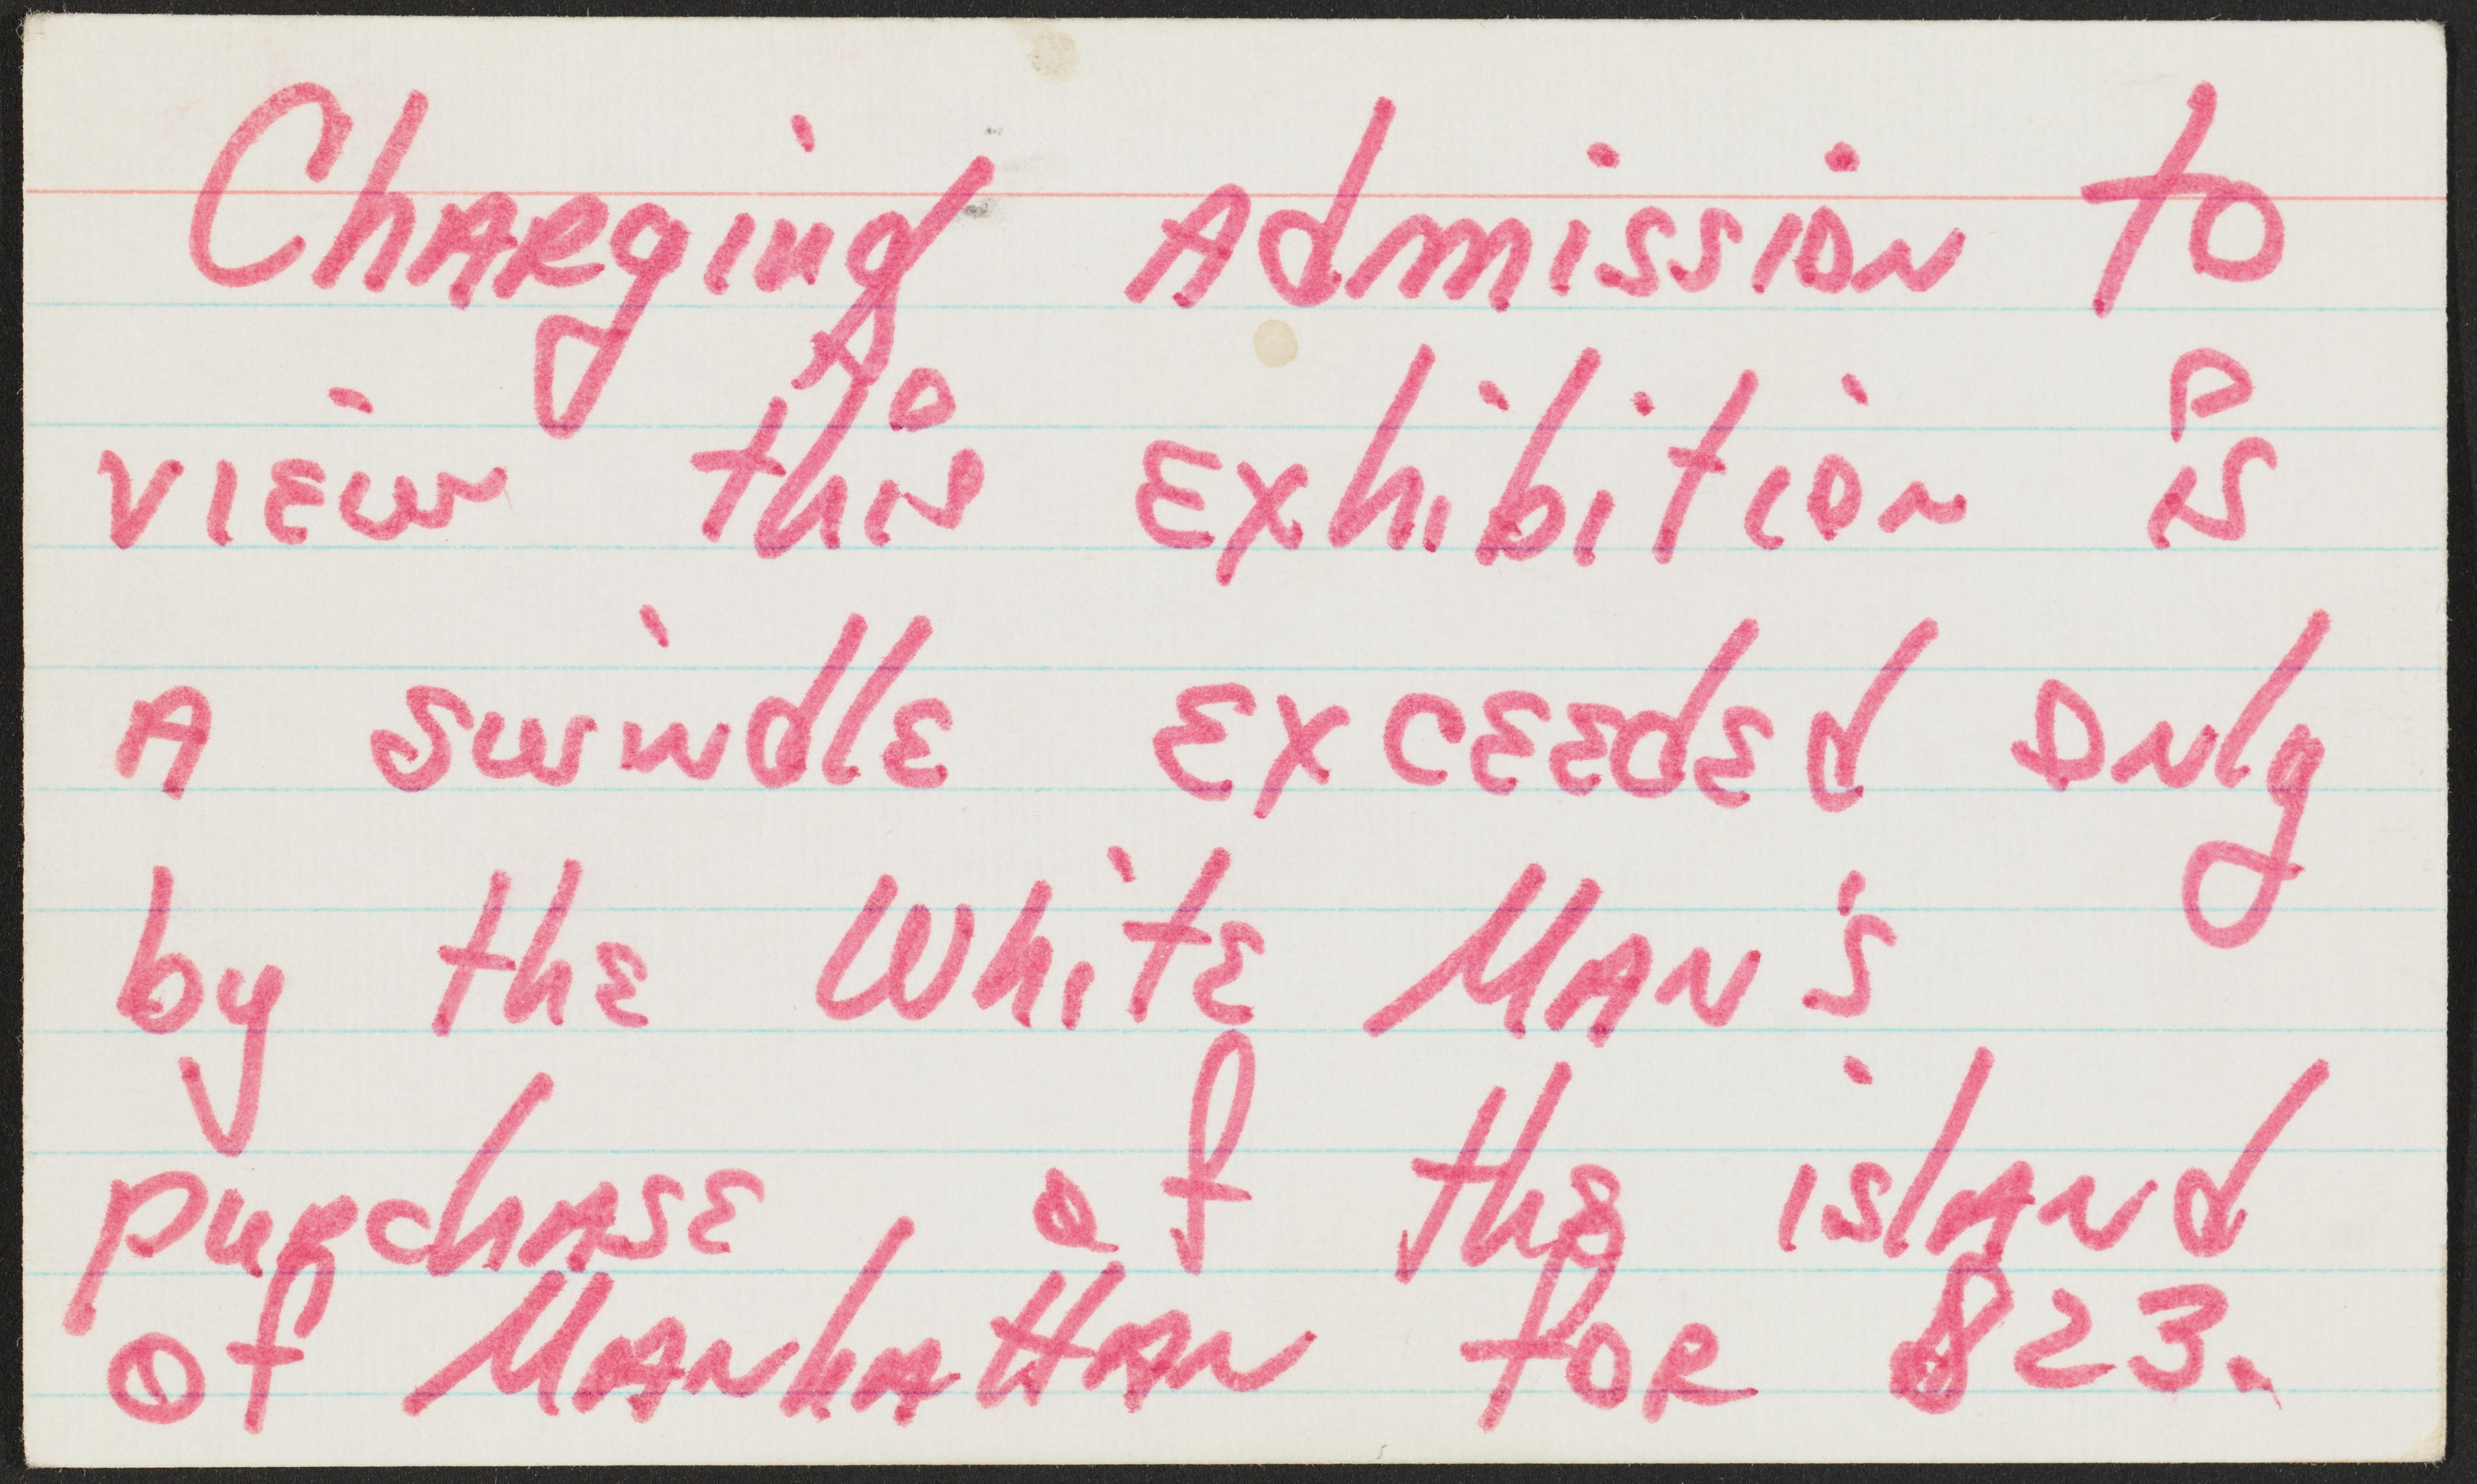 """A ruled index card with red handwritten text reads """"Charging admission to view this exhibition is a swindle exceeded only by the white man's purchase of the island of Manhattan for $23."""""""